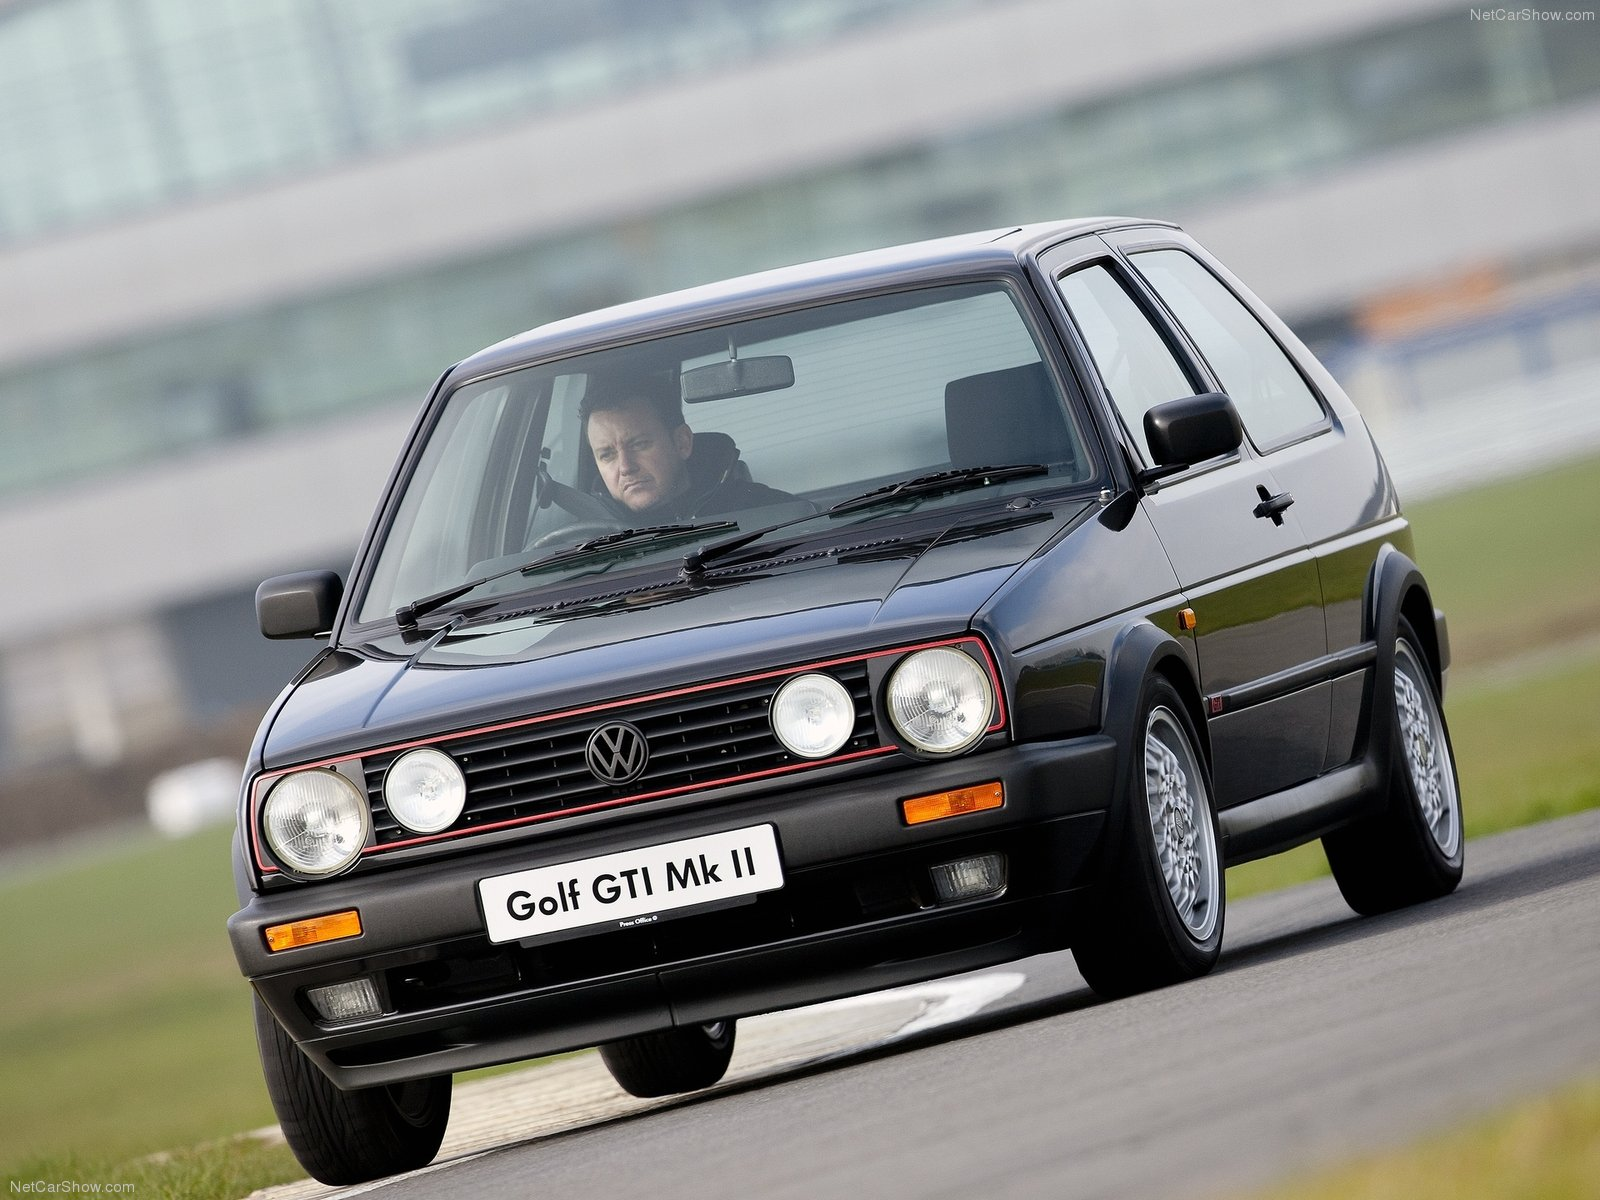 Volkswagen Golf 1989 My Perfect Volkswagen Golf 2 Gti 3dtuning Probably The Best Car